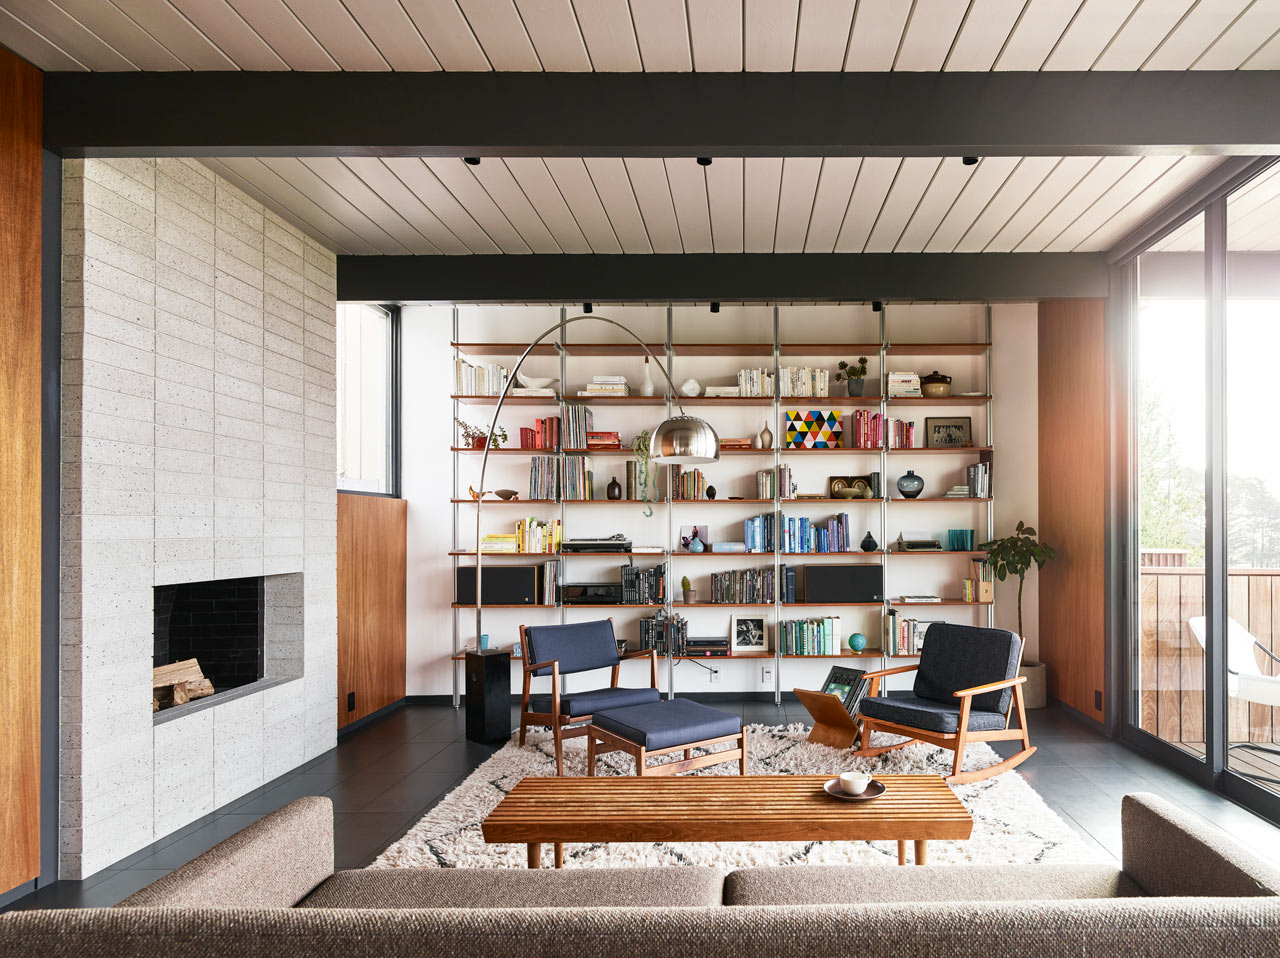 Michael Hennessey Architecture Renovates a 1965 Eichler Residence